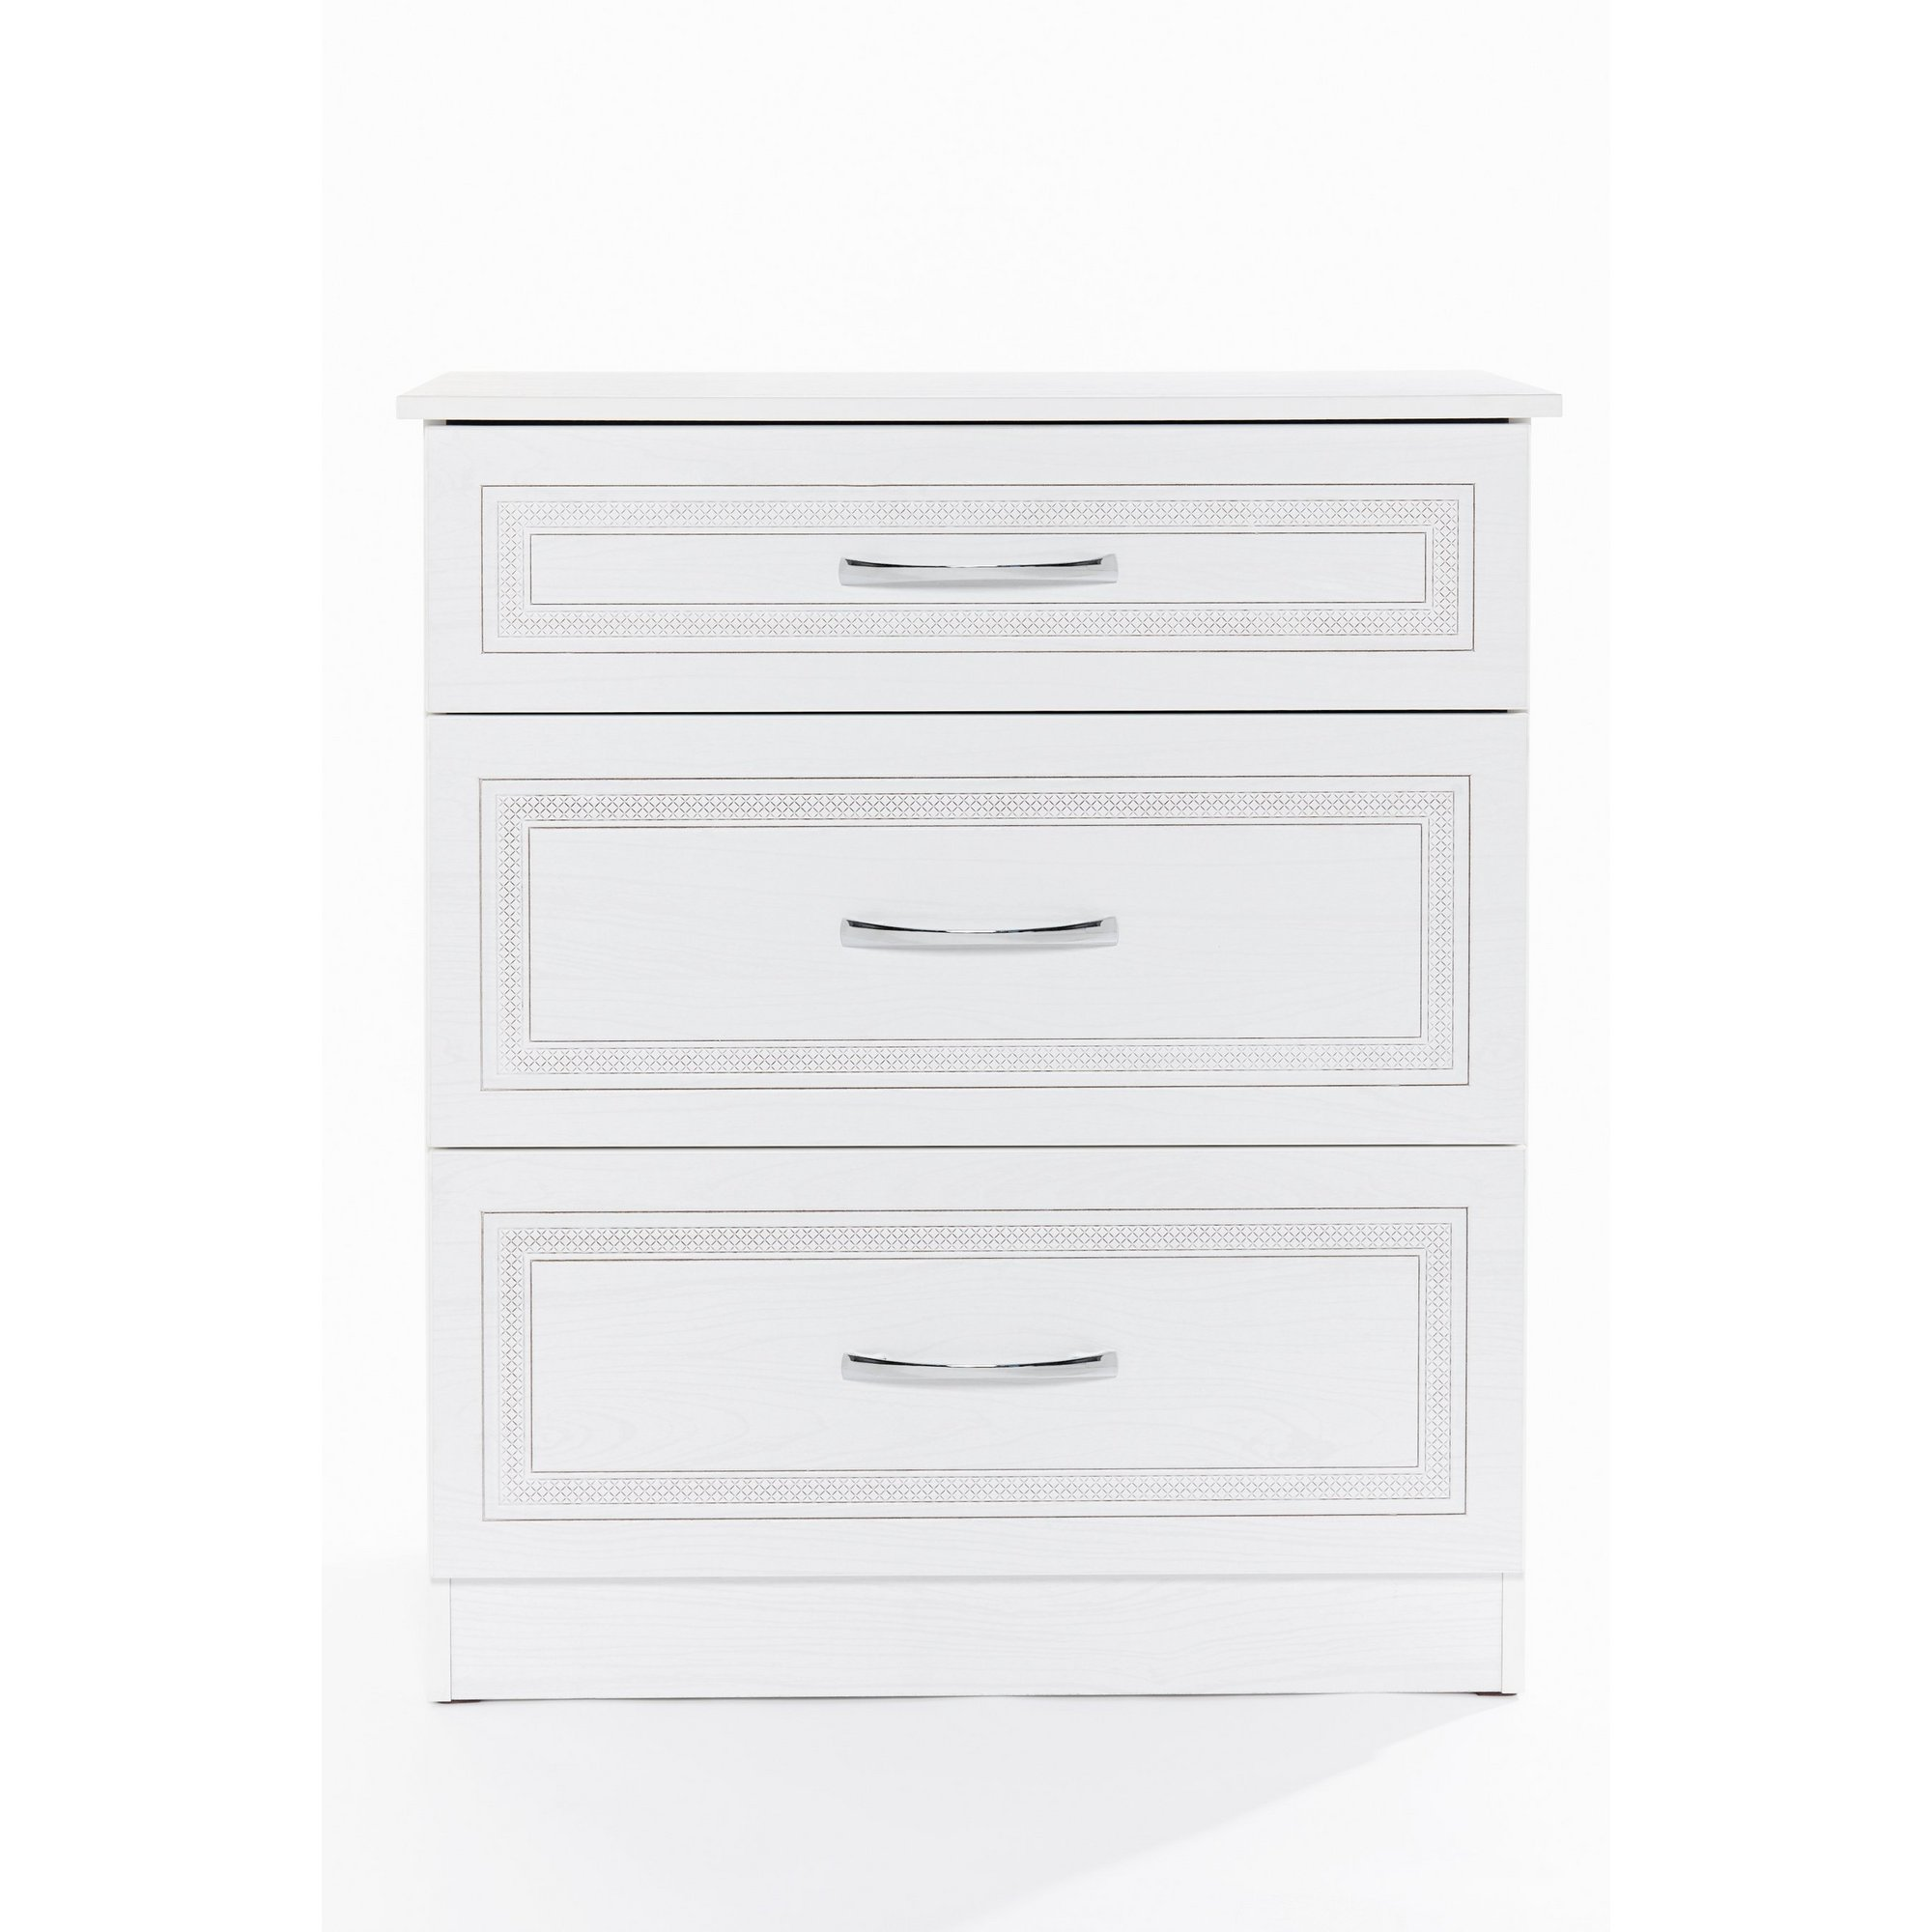 Image of Dorset 3 Drawer Chest of Drawers - Ready Assembled